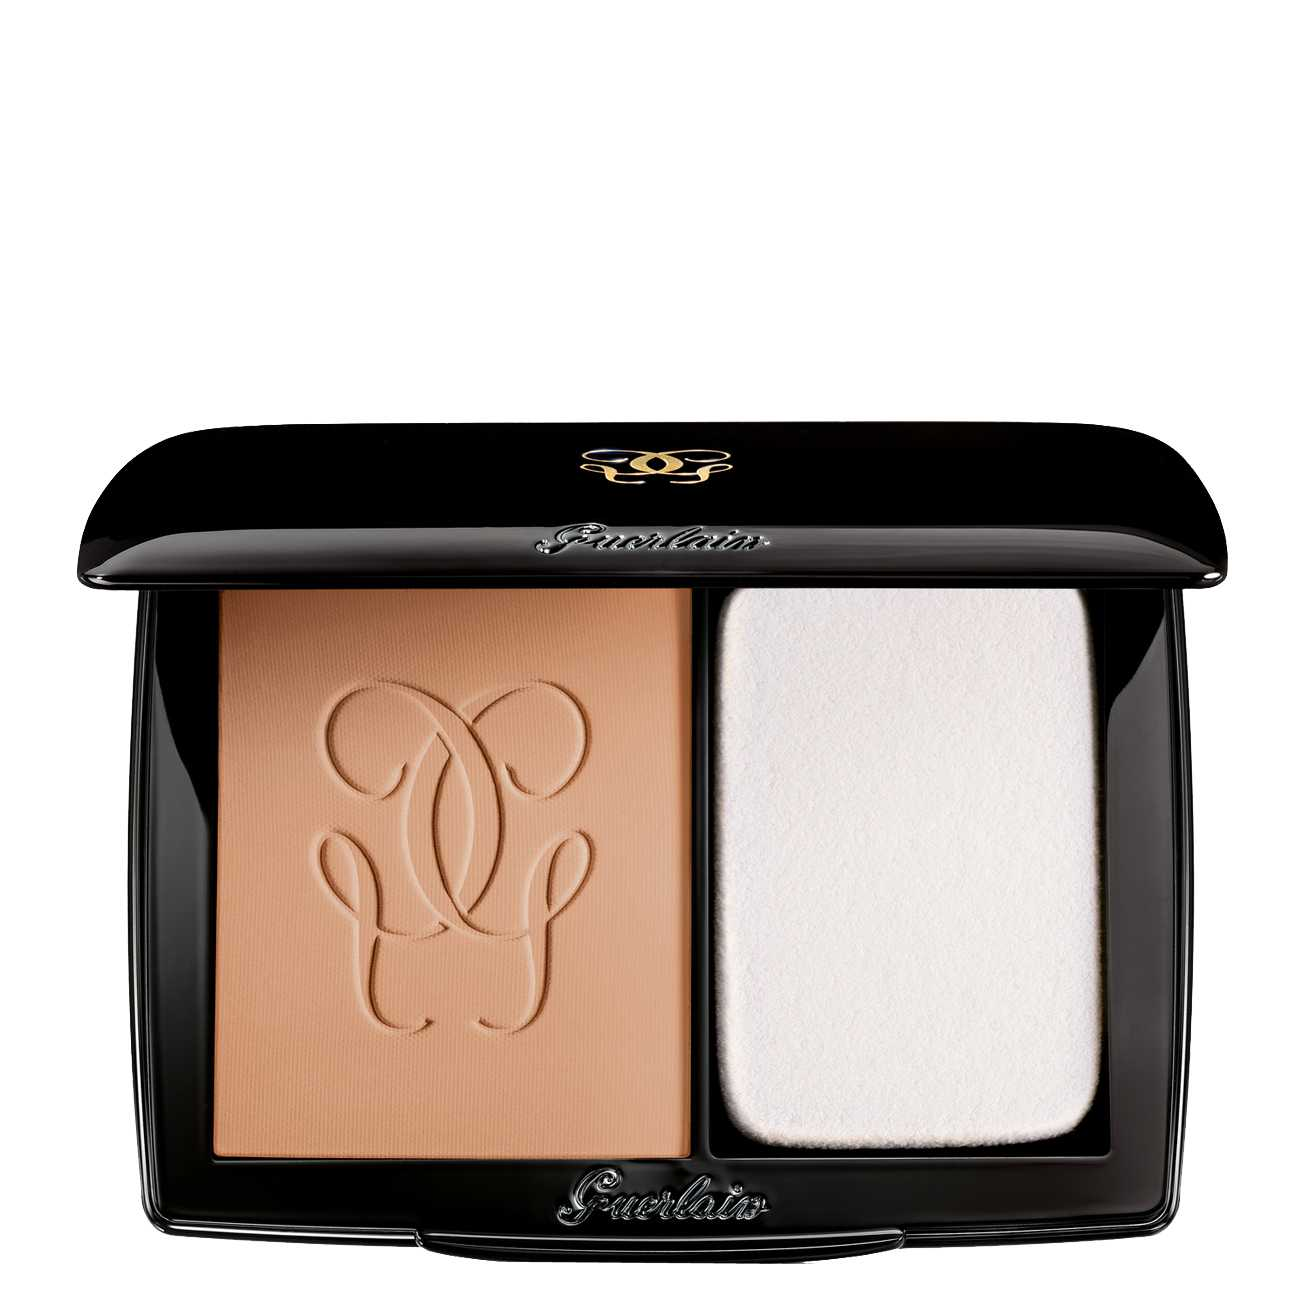 LINGERIE DE PEAU POWDER FOUNDATION ROSE CLAIR 12